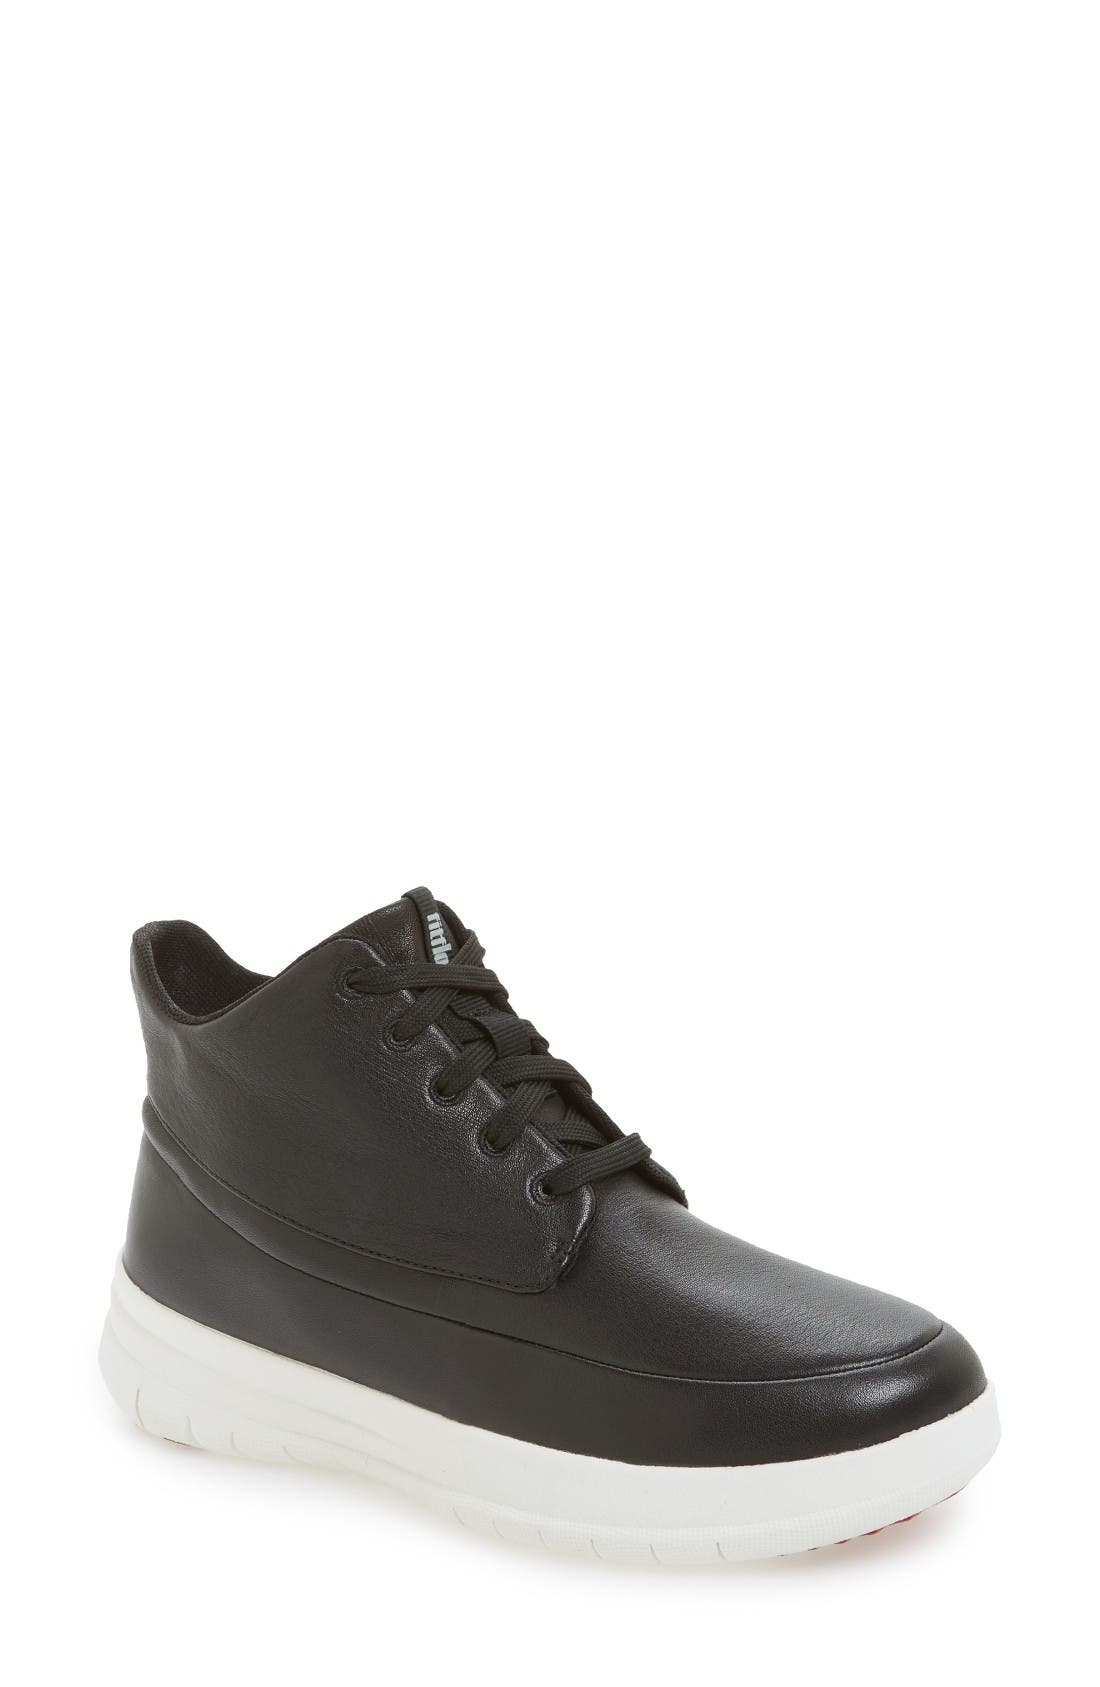 FitFlop Sporty Pop High Top Sneaker (Women)